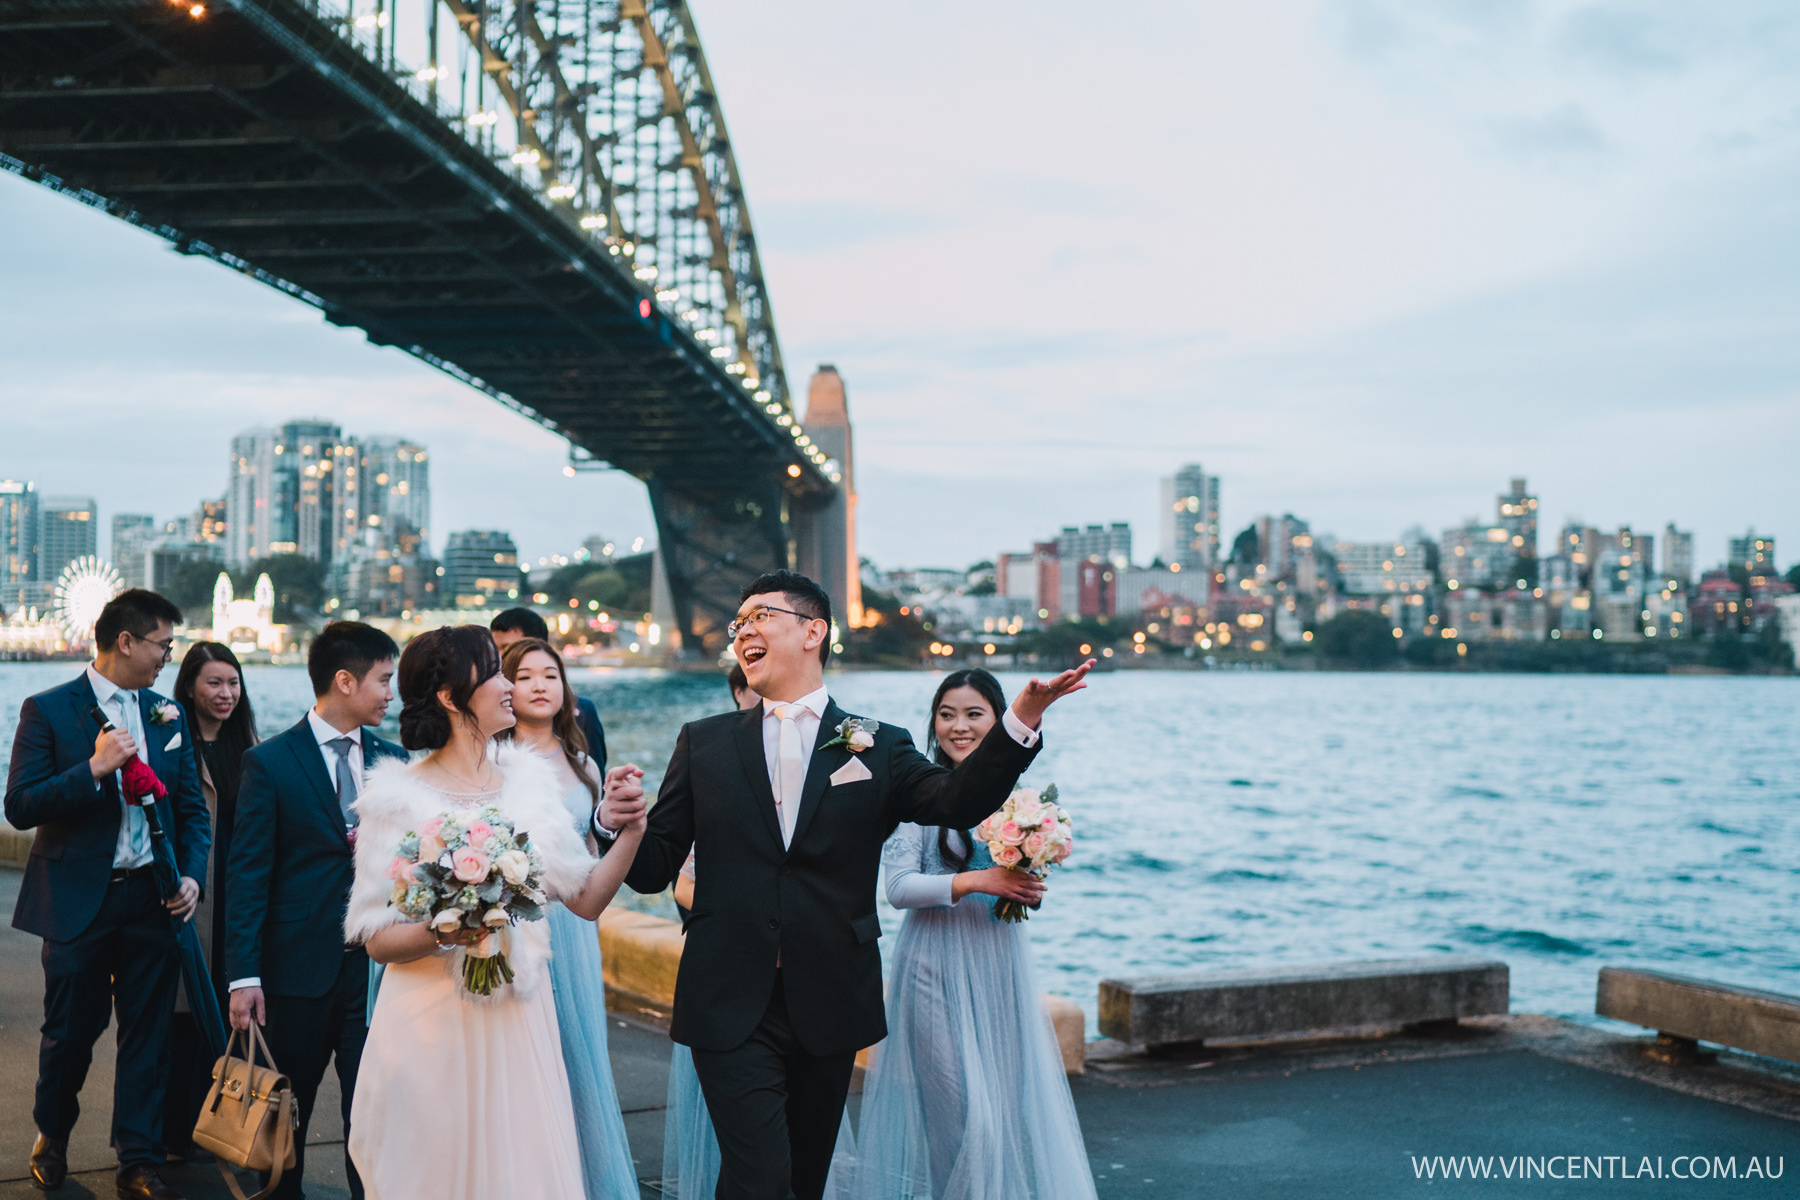 Vincent Lai Sydney Award Winning Wedding Photographer